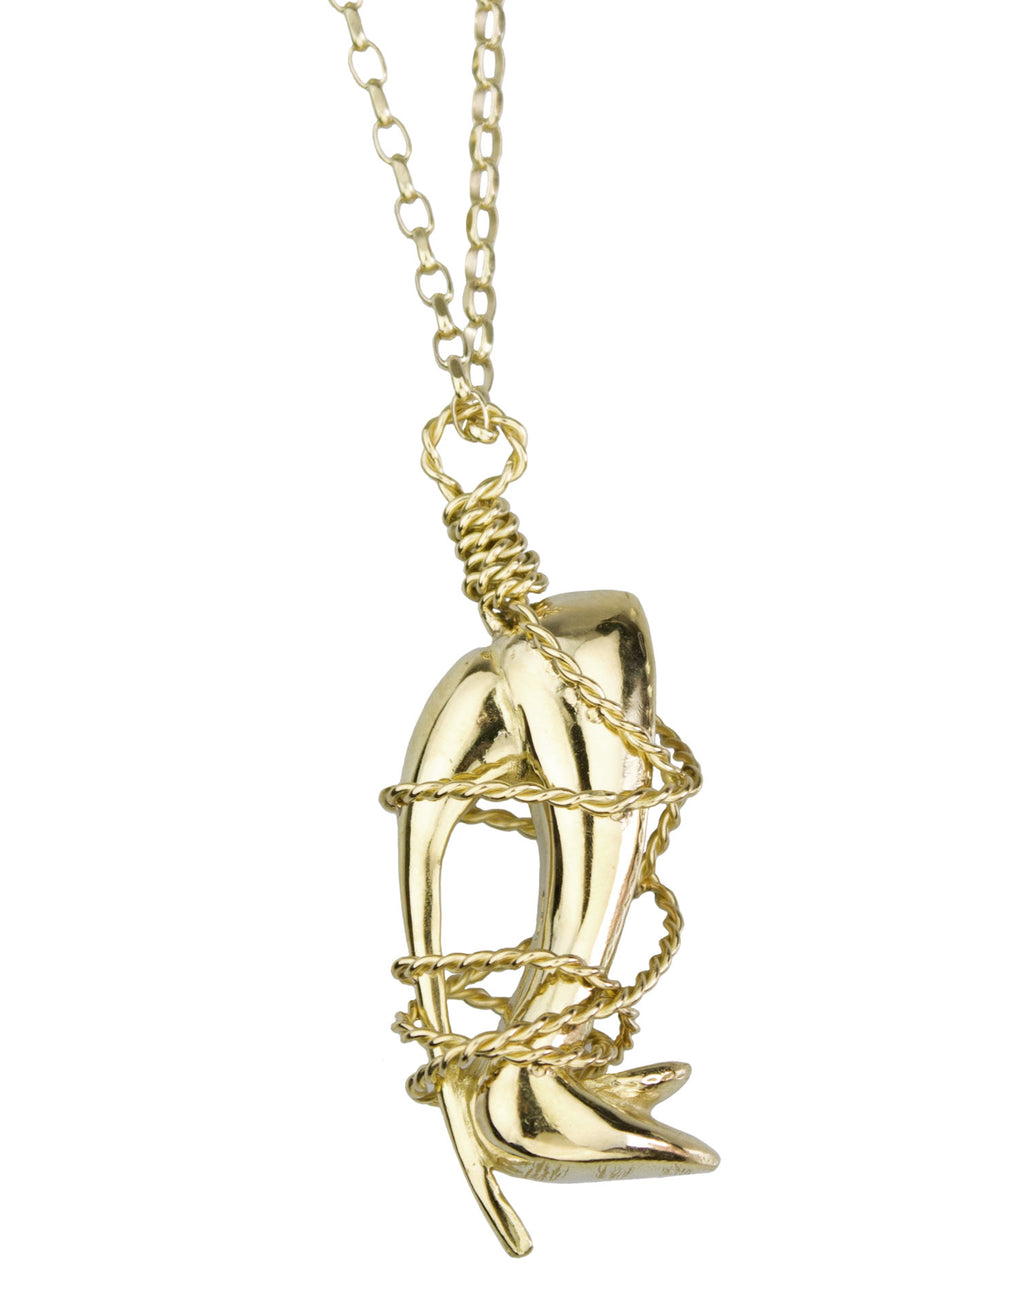 Solid 18k gold shoe pendant with solid 9k gold chain by shoe designer Georgina Goodman. Brought to life by artisan Momo from one of Georgina's drawings this piece was hand carved in wax and cast in gold.